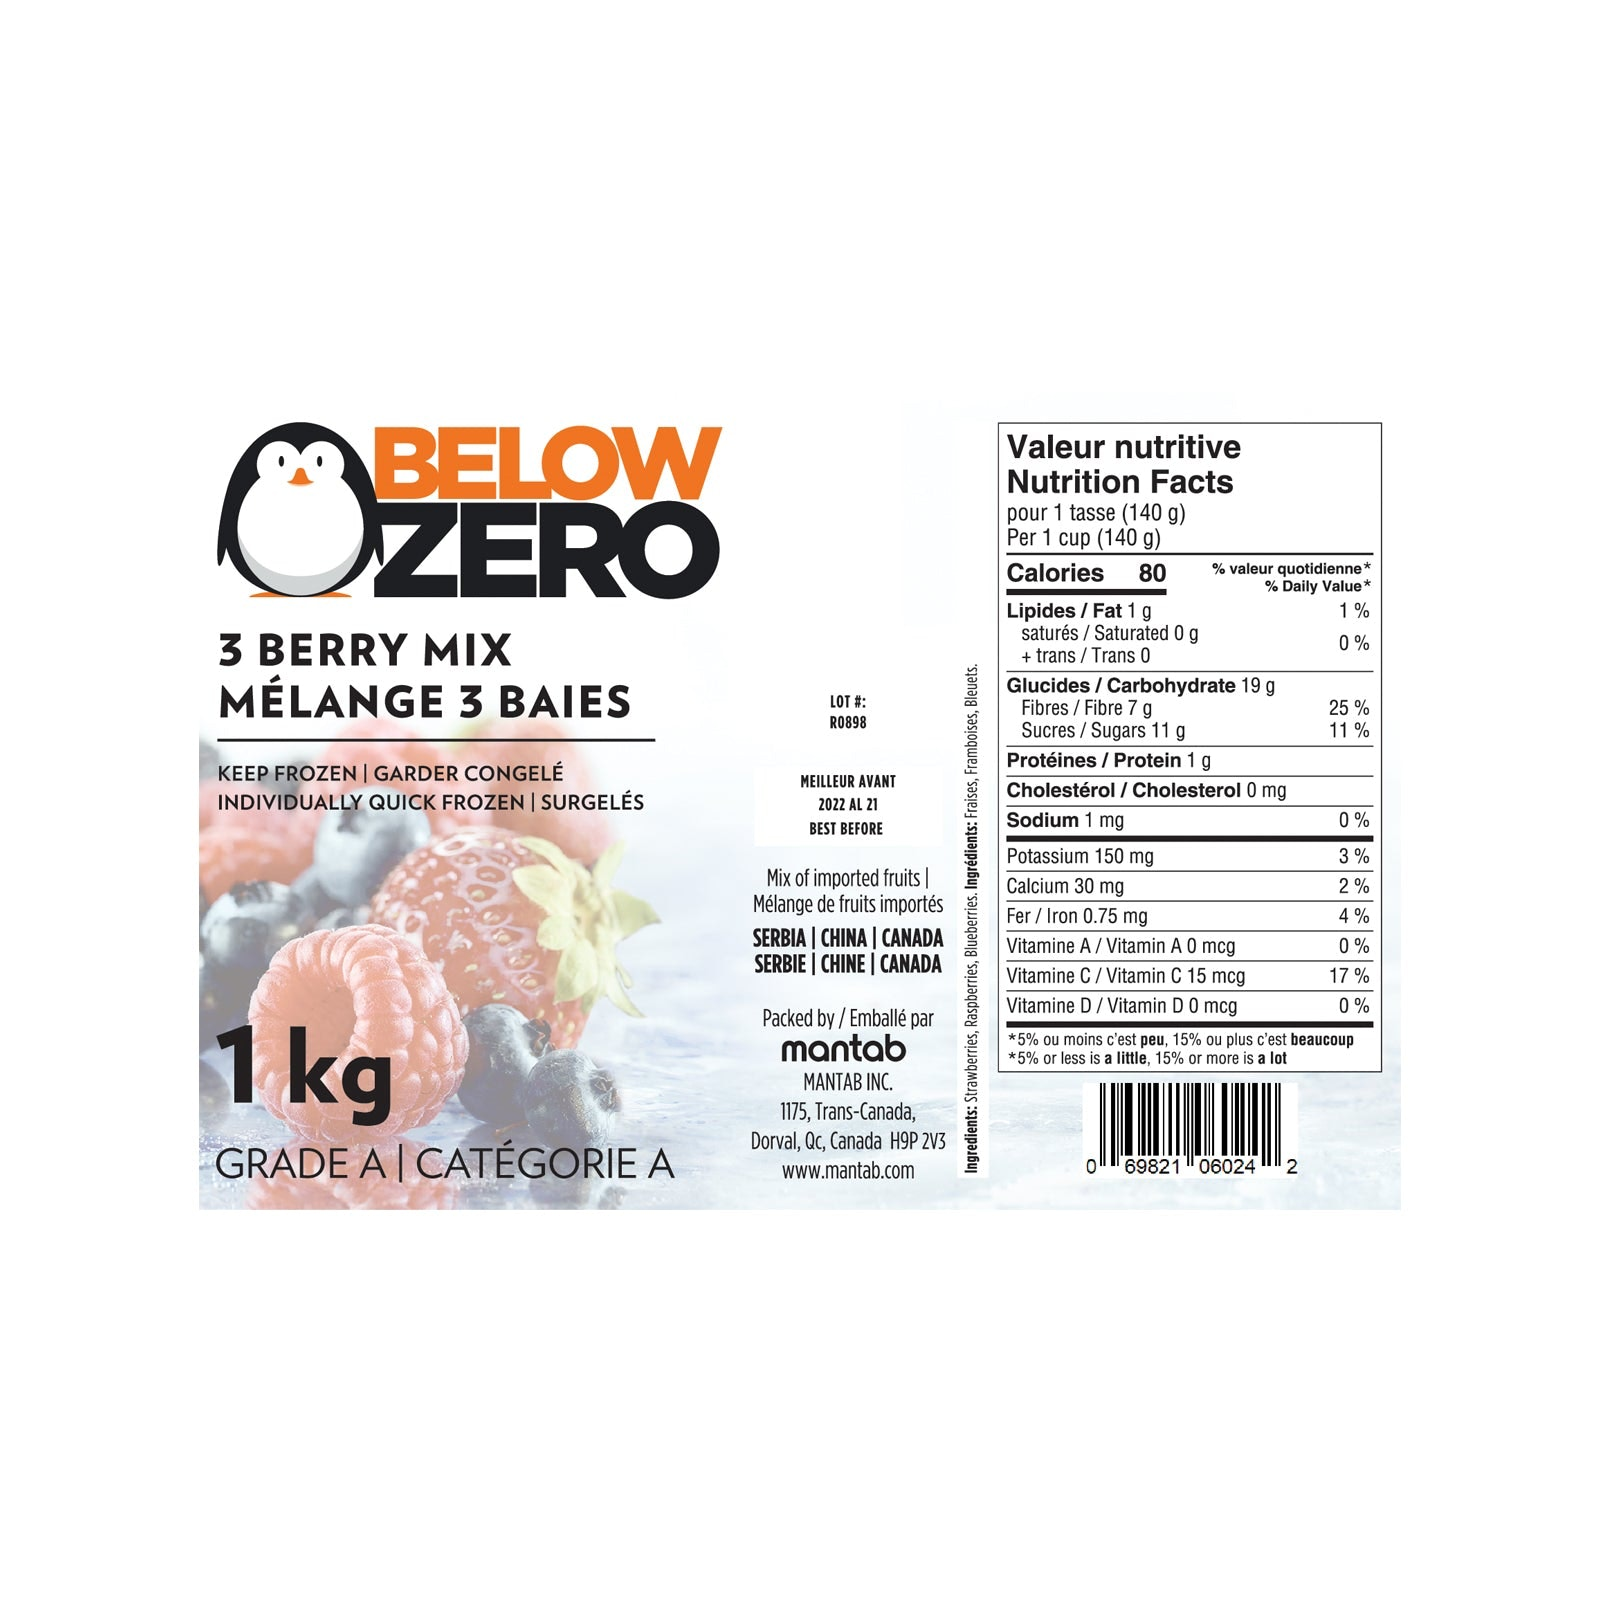 BELOW ZERO 3 berry blend